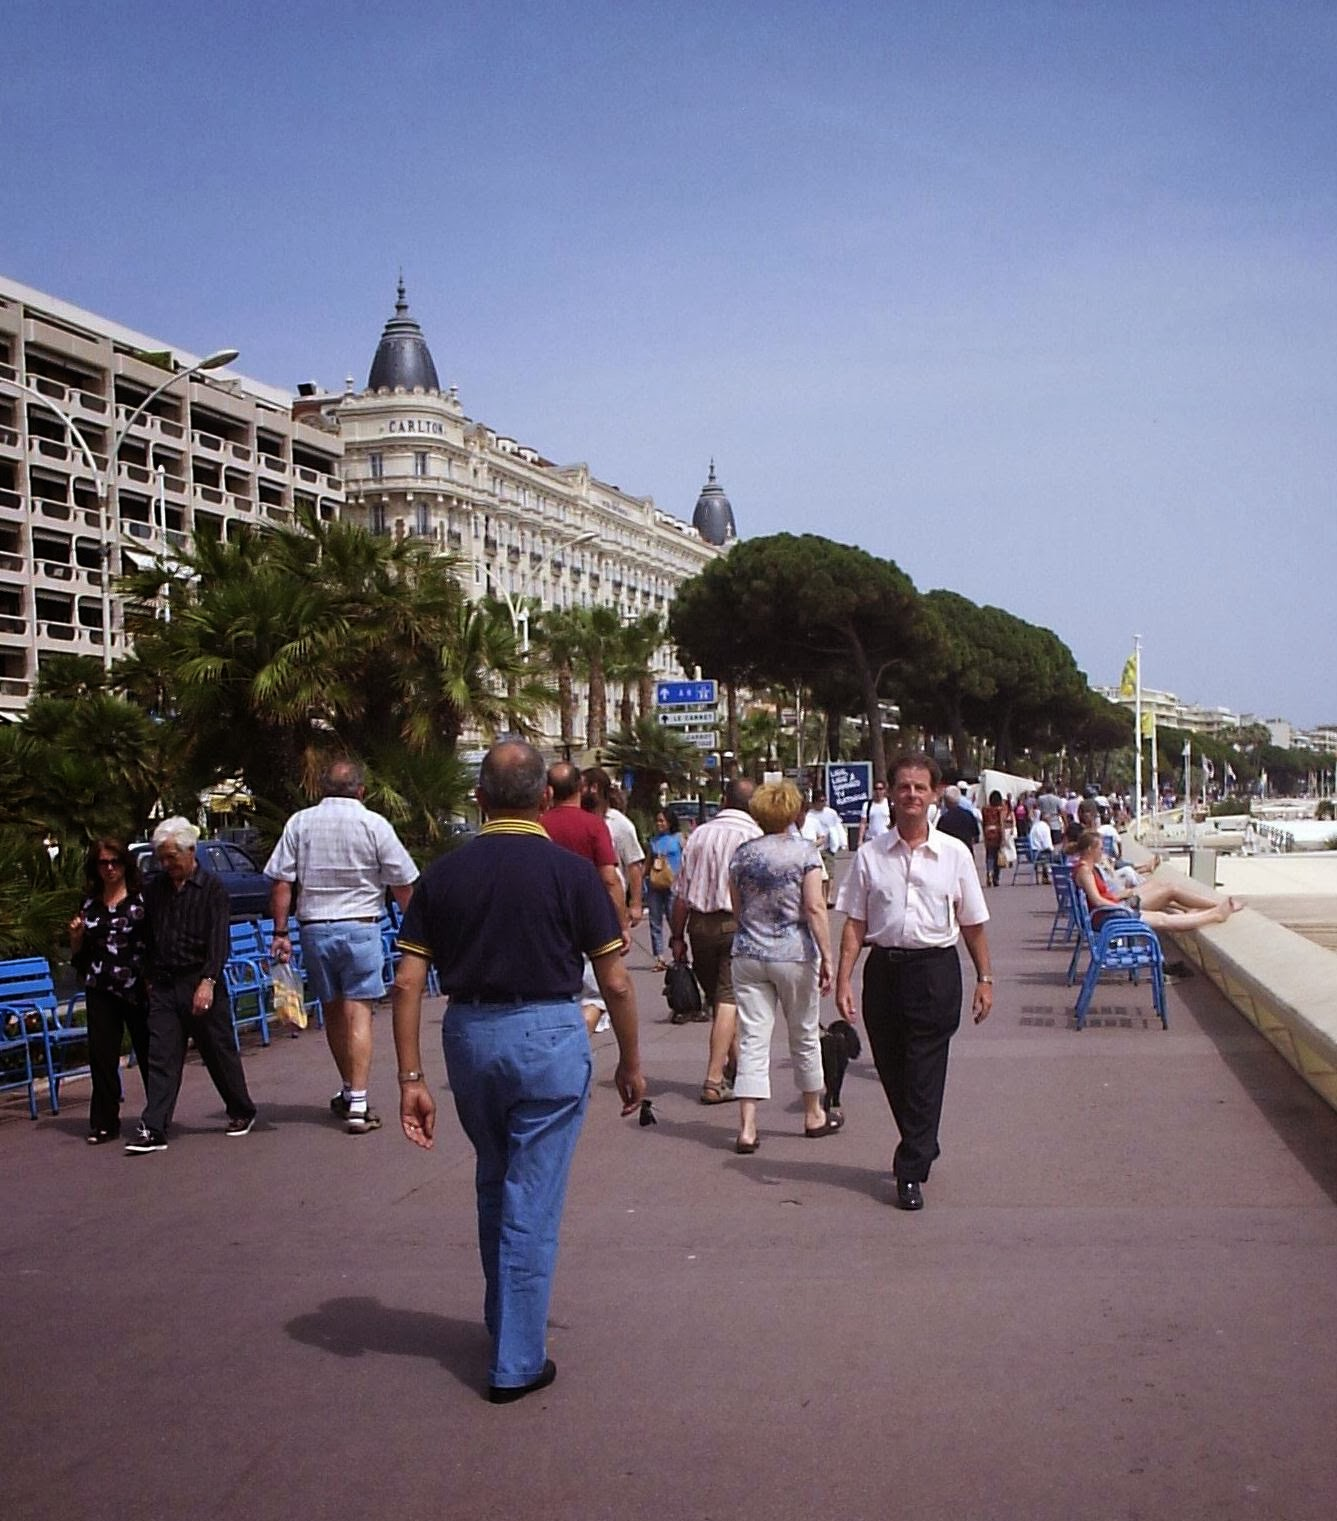 The Beginners Guide to the French Riviera: Stop Dreaming